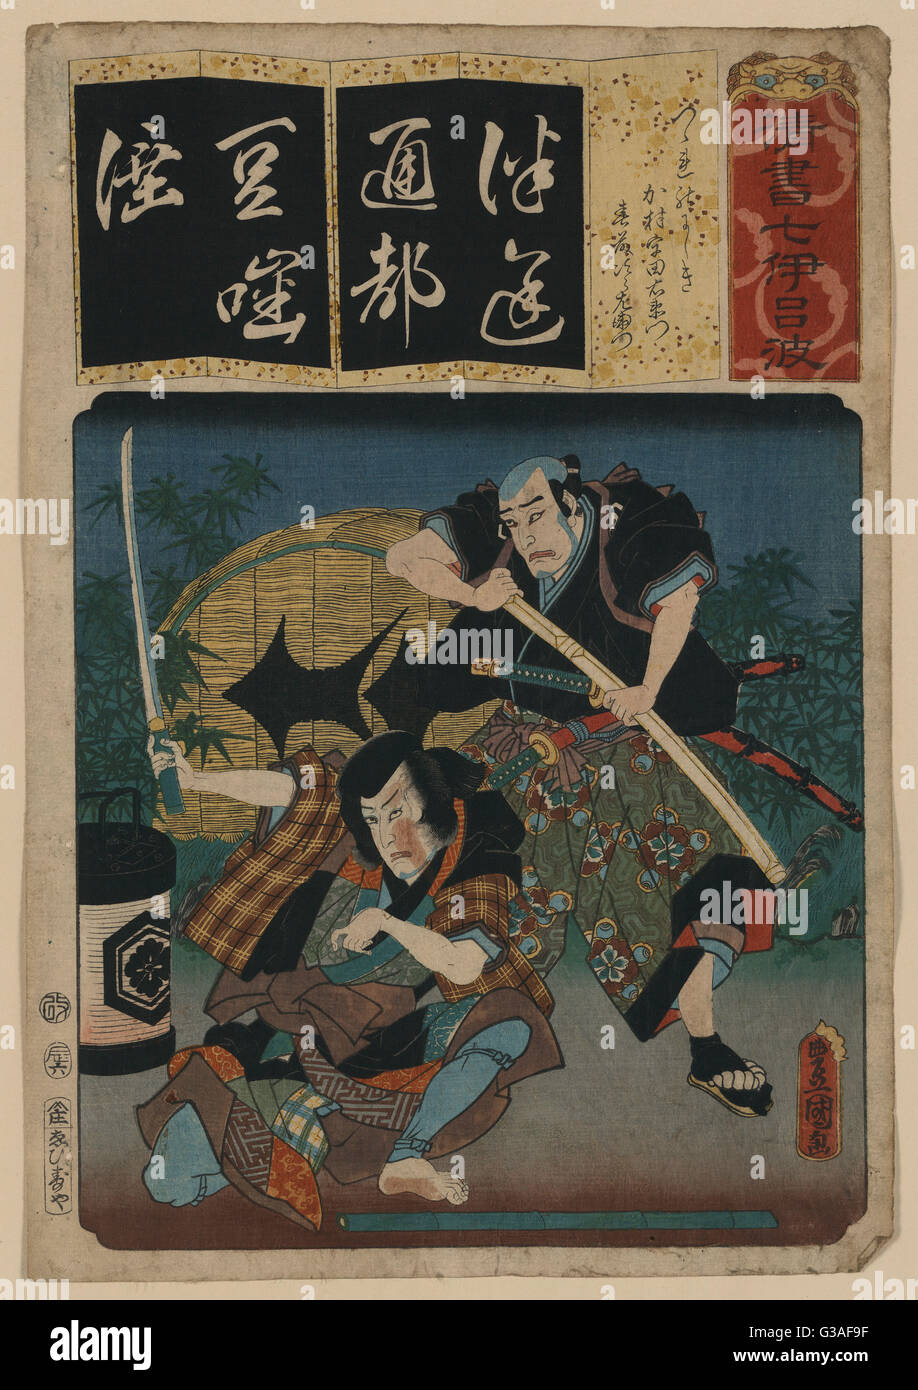 Kyogen: the brocade tapestry. Date 1857. - Stock Image